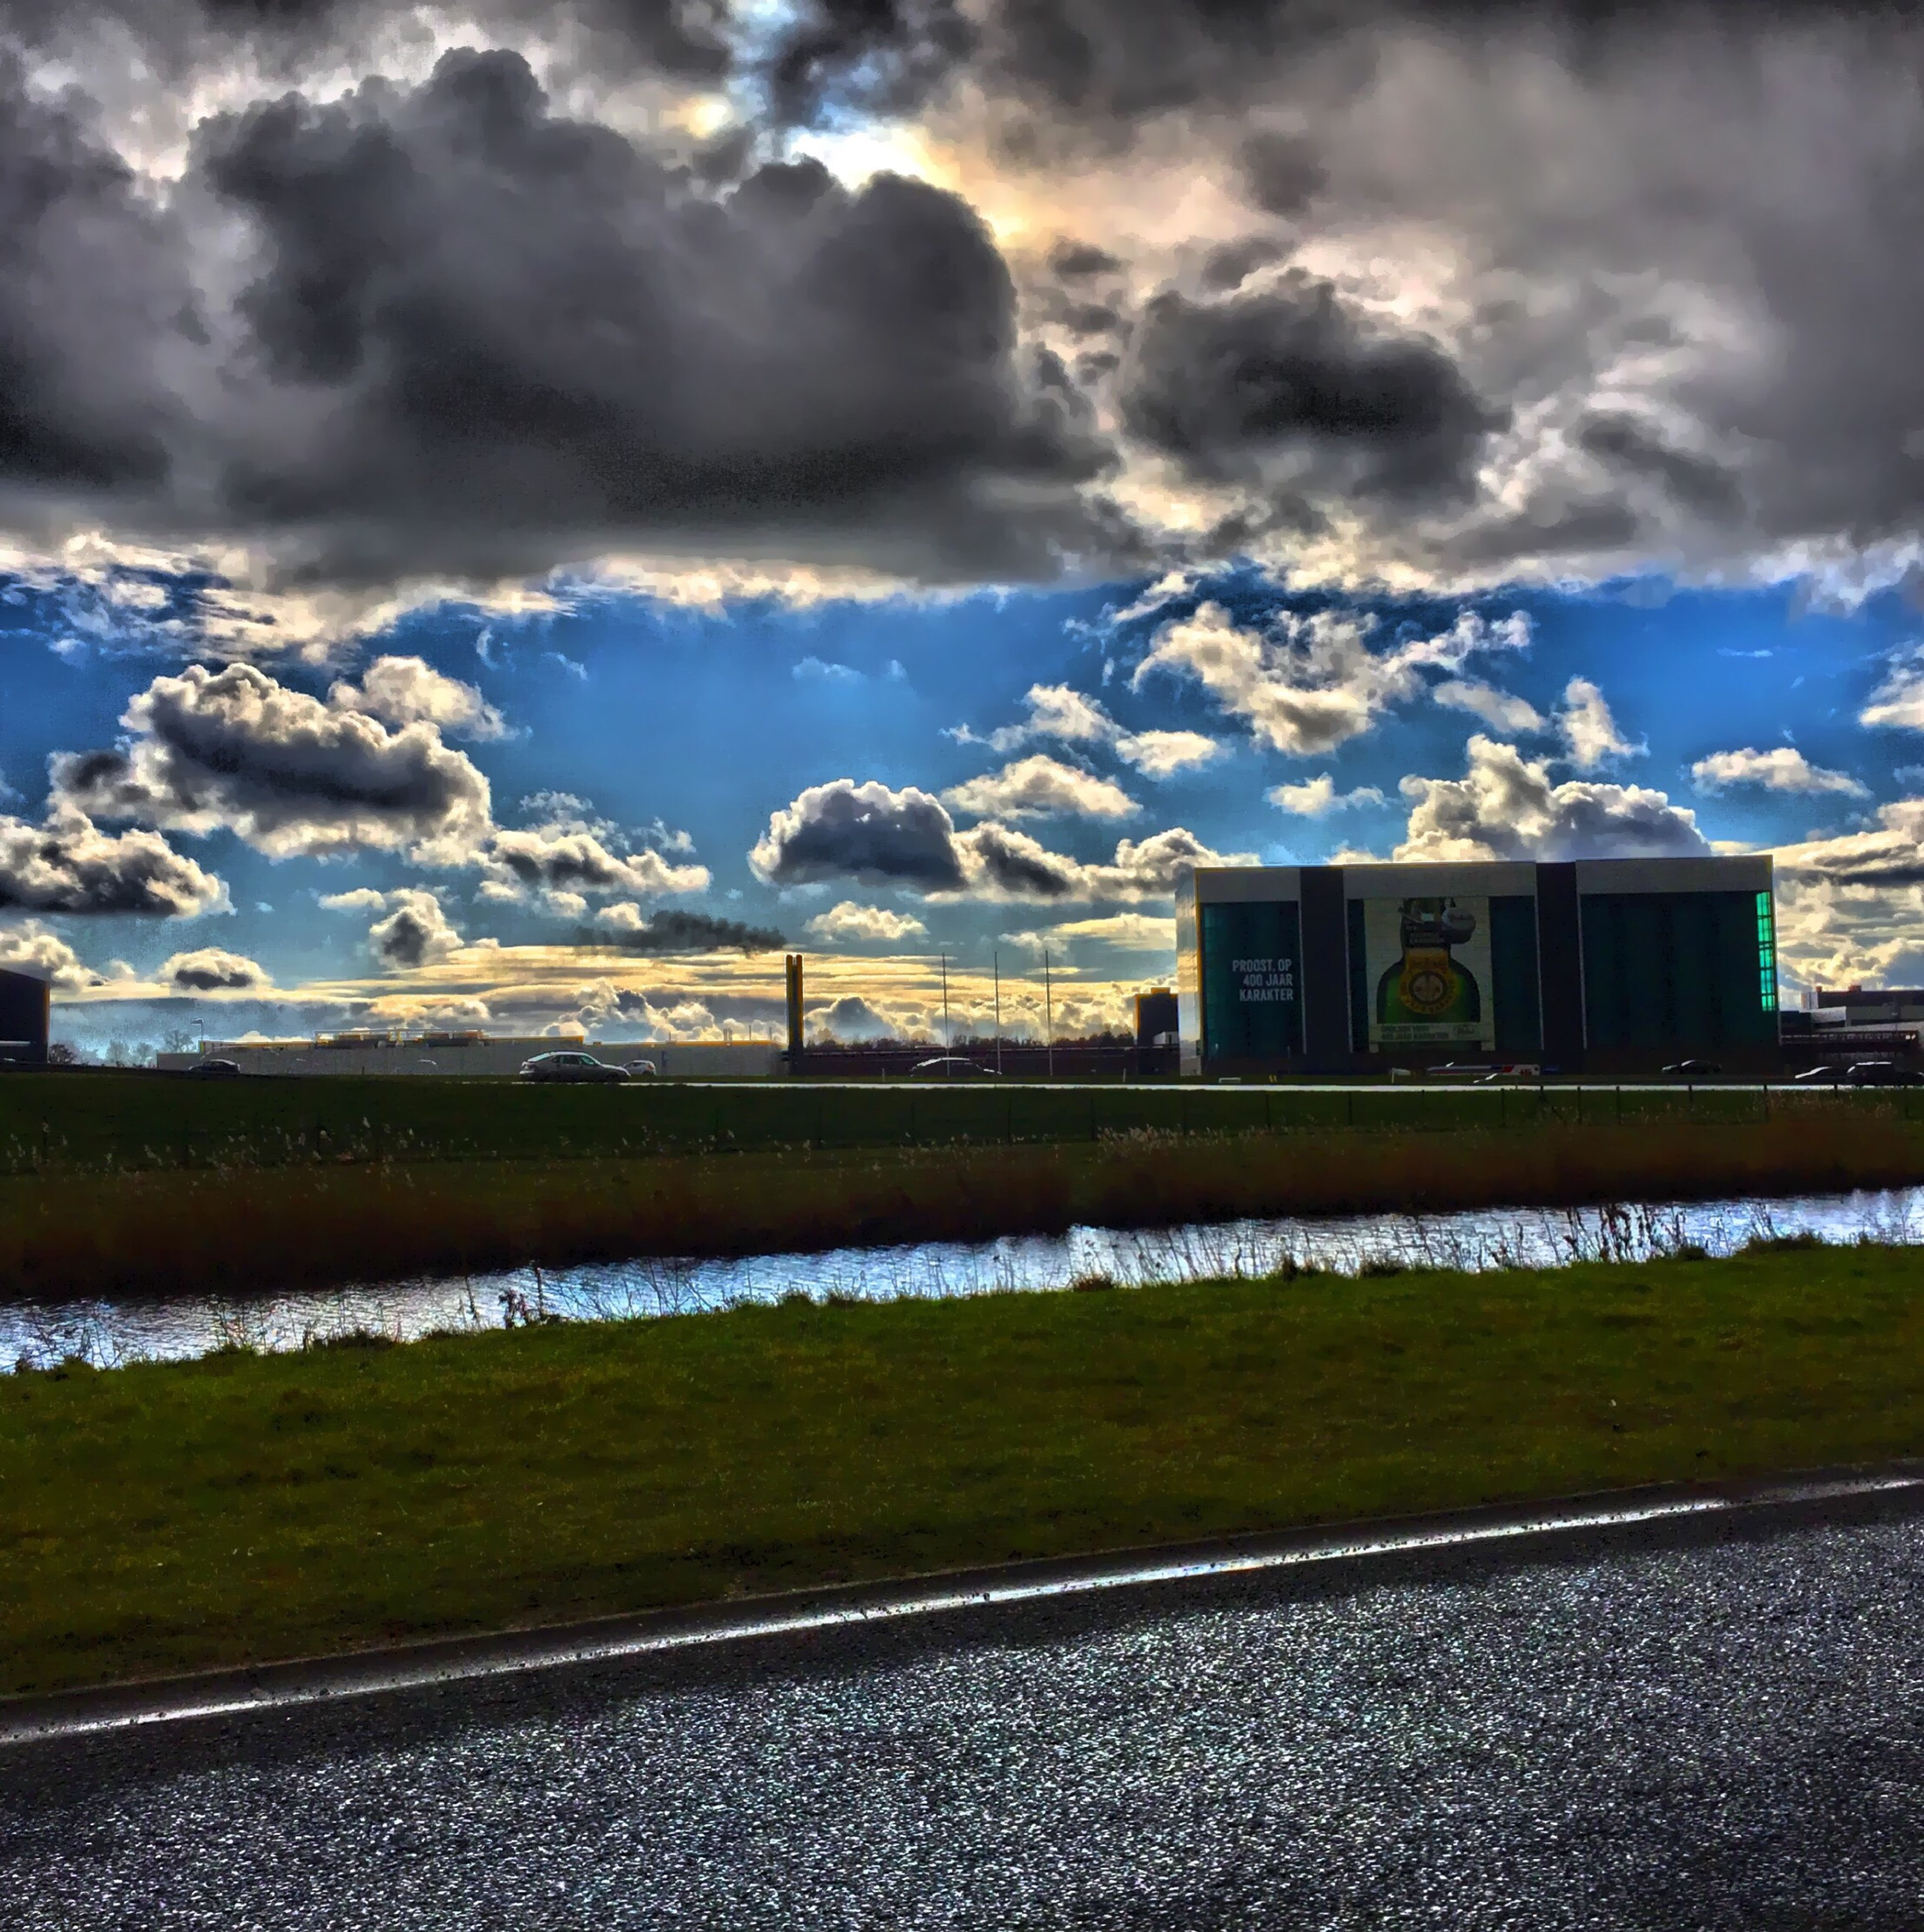 sky, cloud - sky, cloudy, water, building exterior, cloud, built structure, architecture, weather, road, nature, tranquility, beauty in nature, tranquil scene, river, lake, scenics, landscape, grass, field